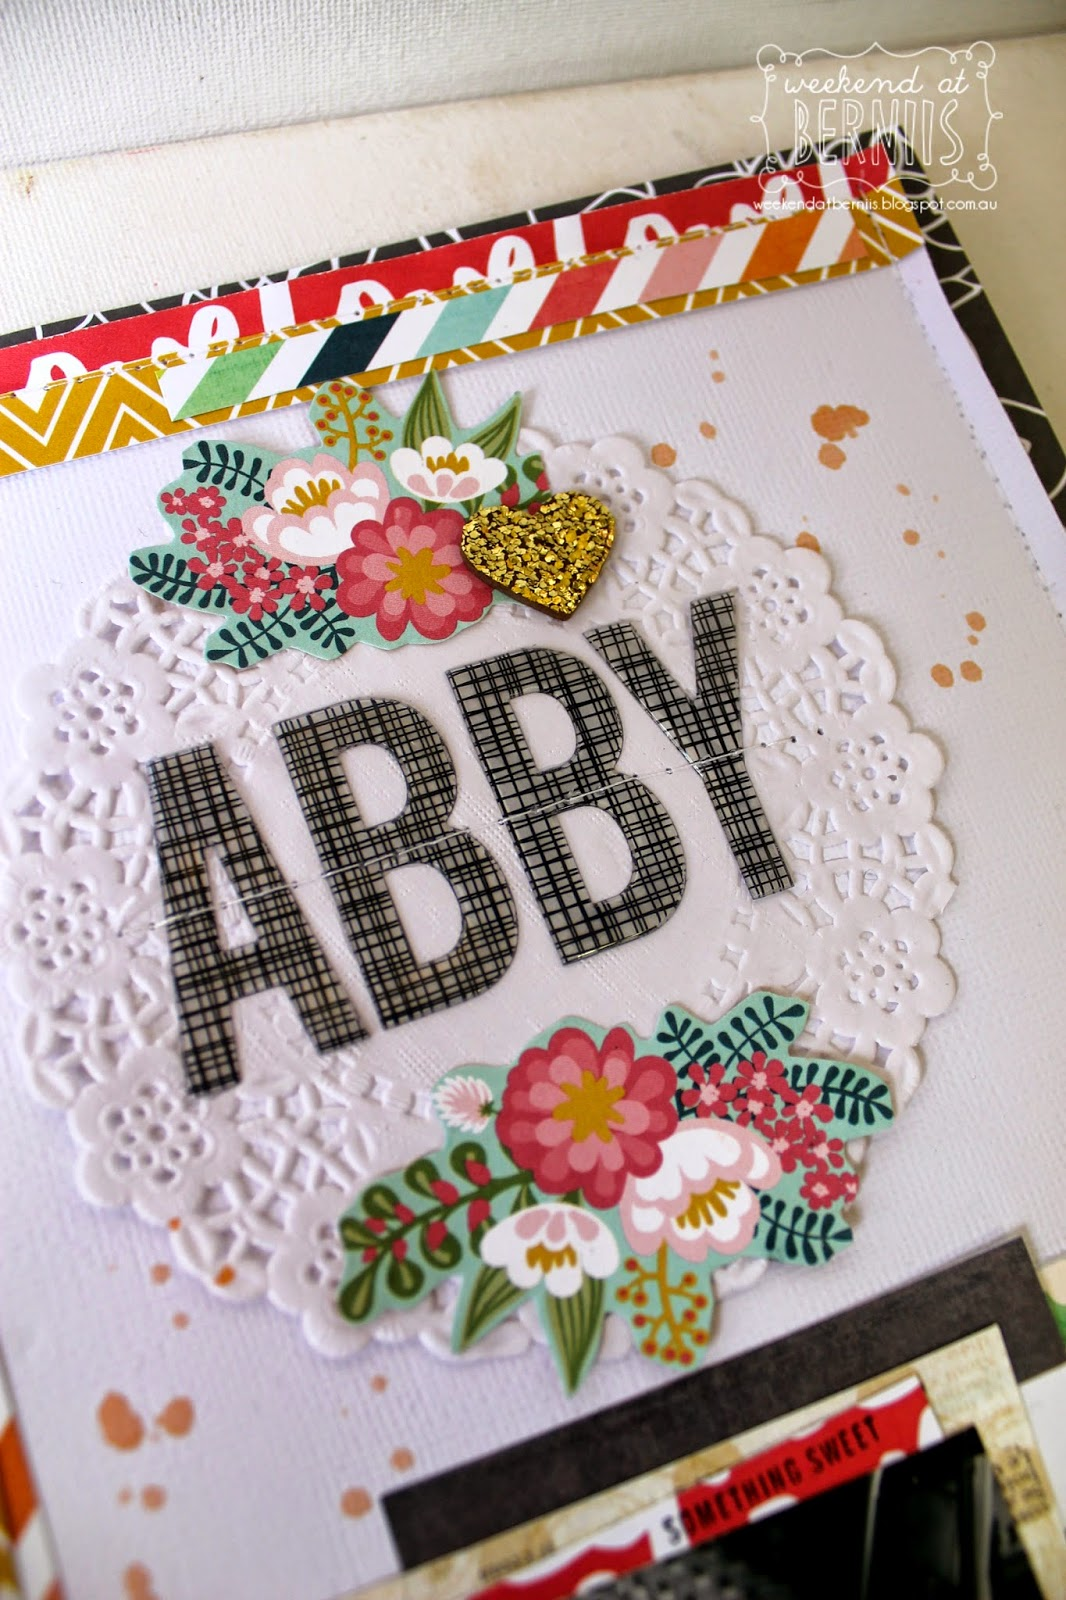 Abby layout be Bernii Miller using the Scrappy Canary kit - December - Sunshine & Lollipops.